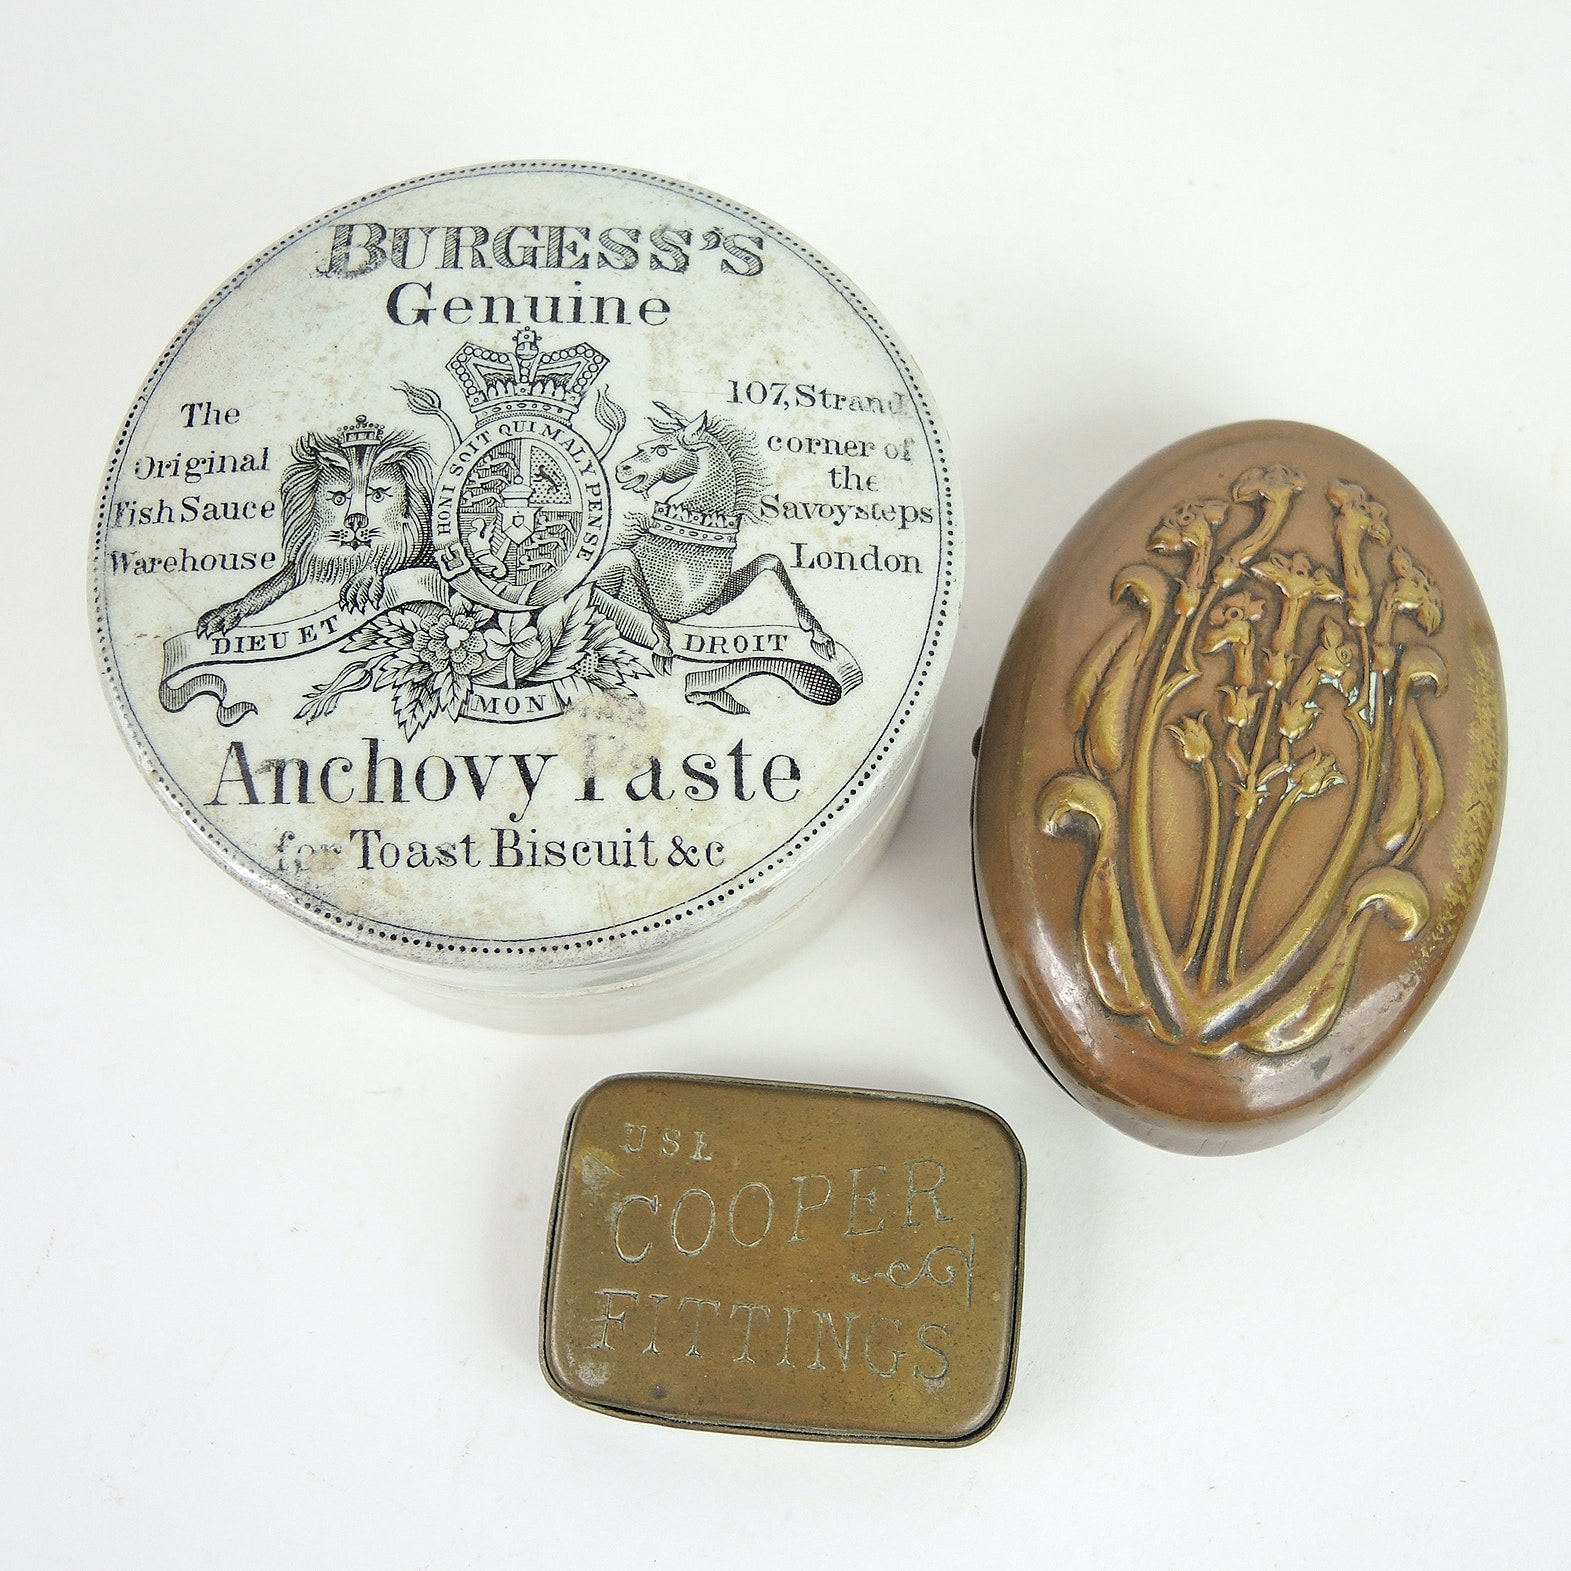 Antique English Tobacco Box, Anchovy Paste Pot and Match Box